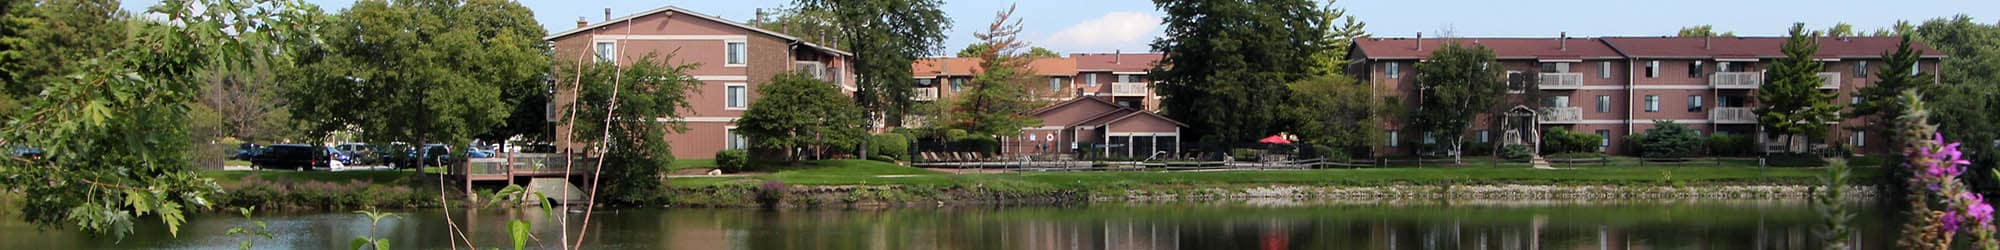 Virtual tour of Lakeside Apartments in Wheaton, Illinois